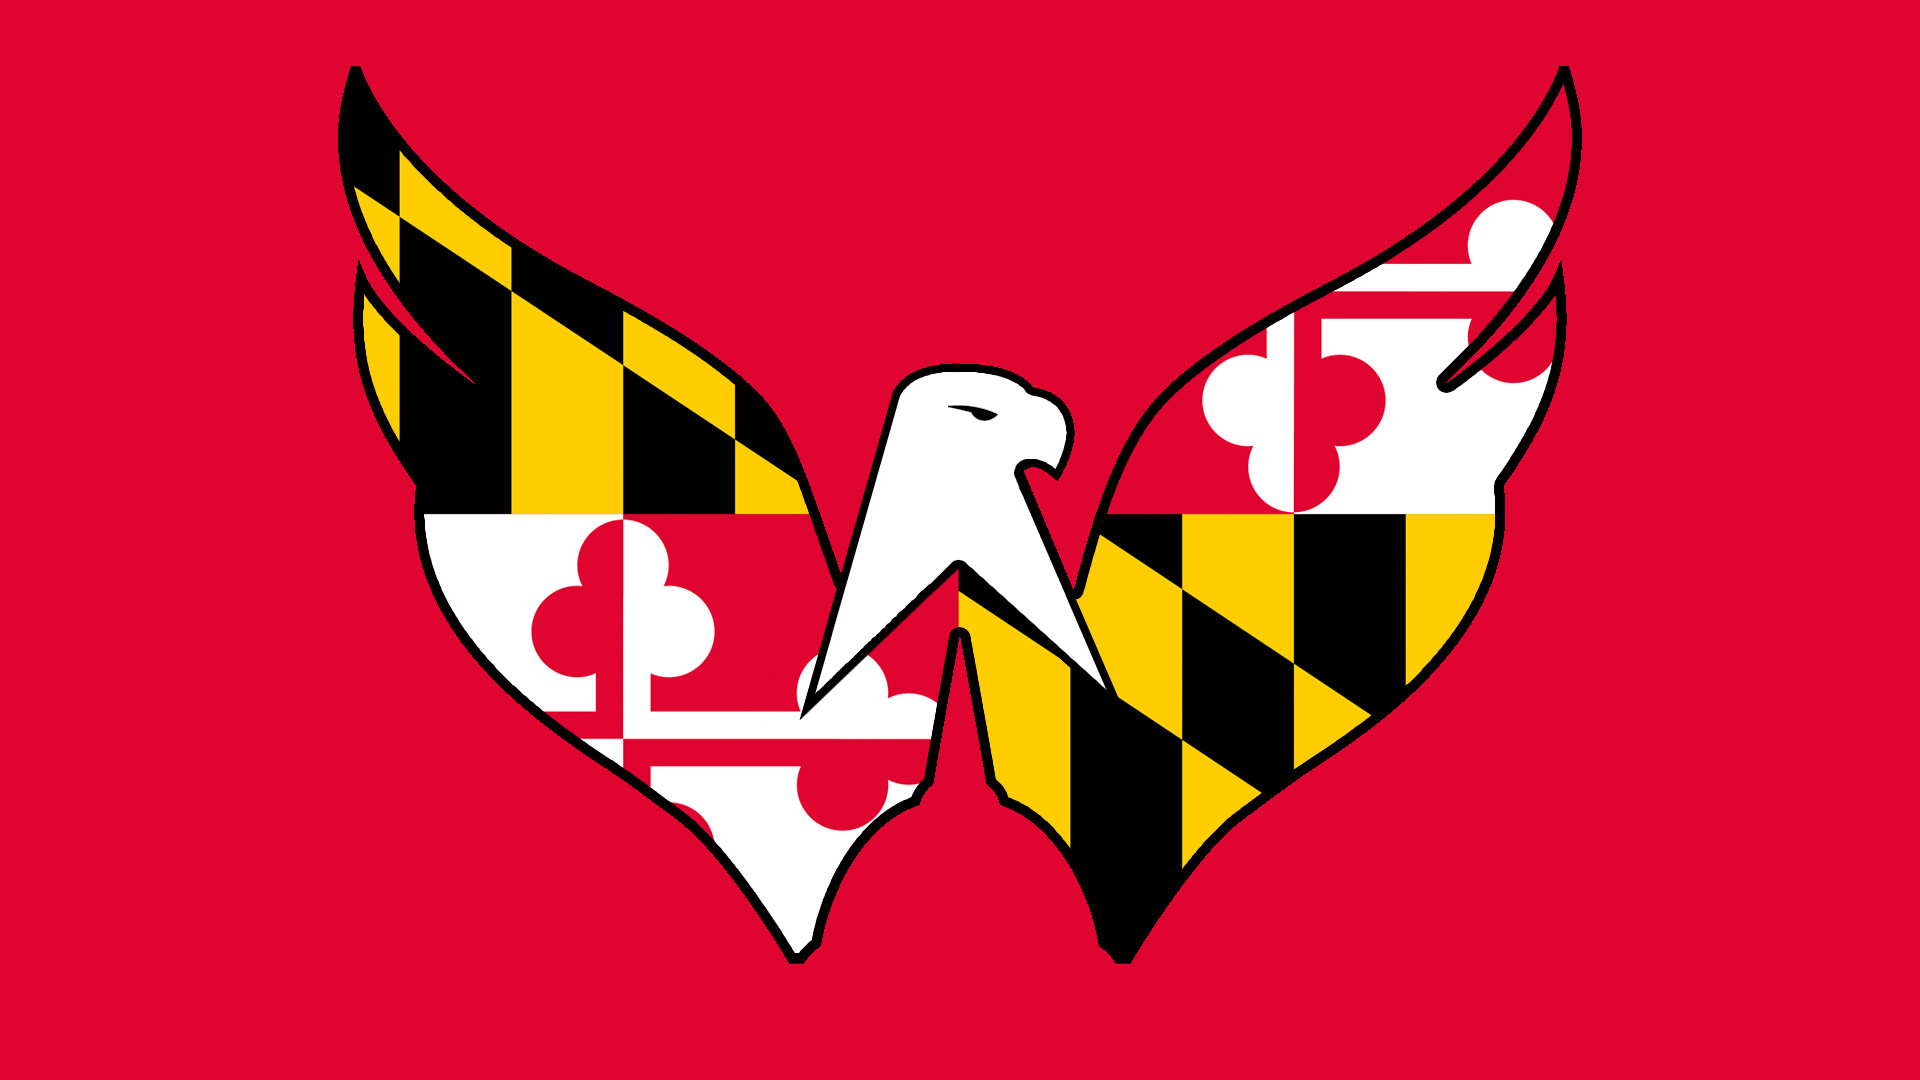 1920x1080 Maryland Flag Weagle Background by /u/StickyBooger (Full album in comments.